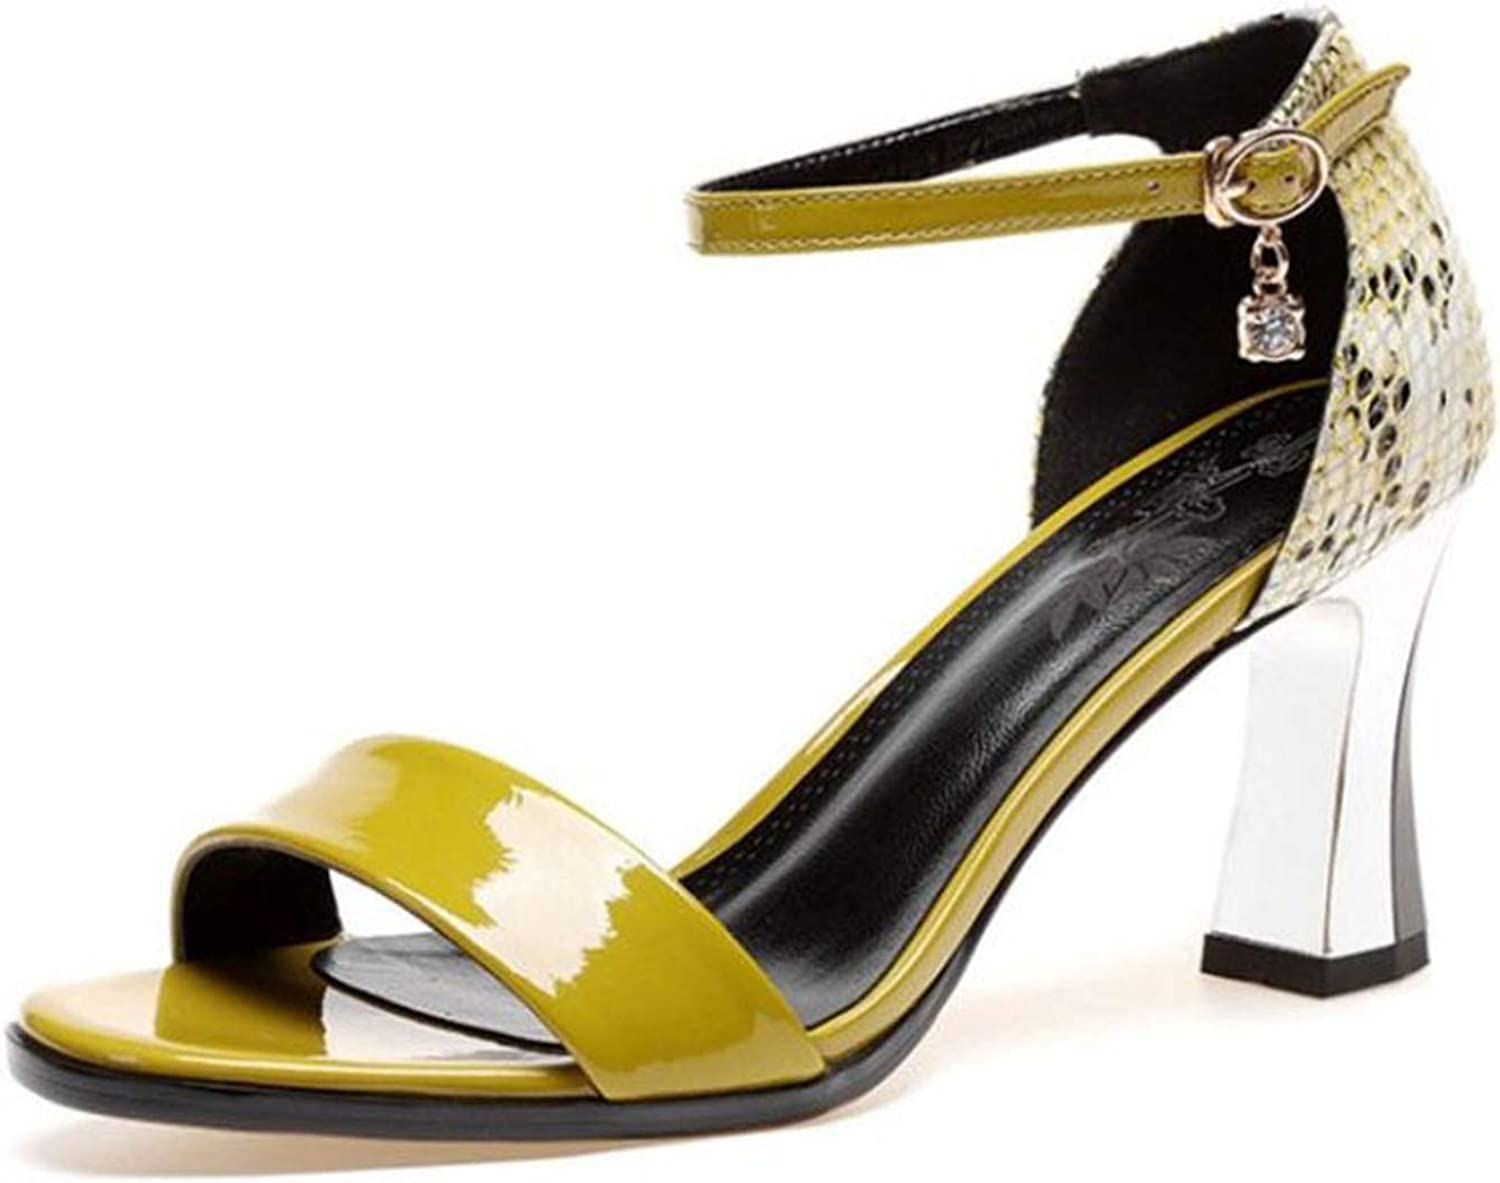 bluee-shore Women Real Genuine Leather High Heel Sandals Ankle Strap Open Toe Thick Heel Sandals shoes